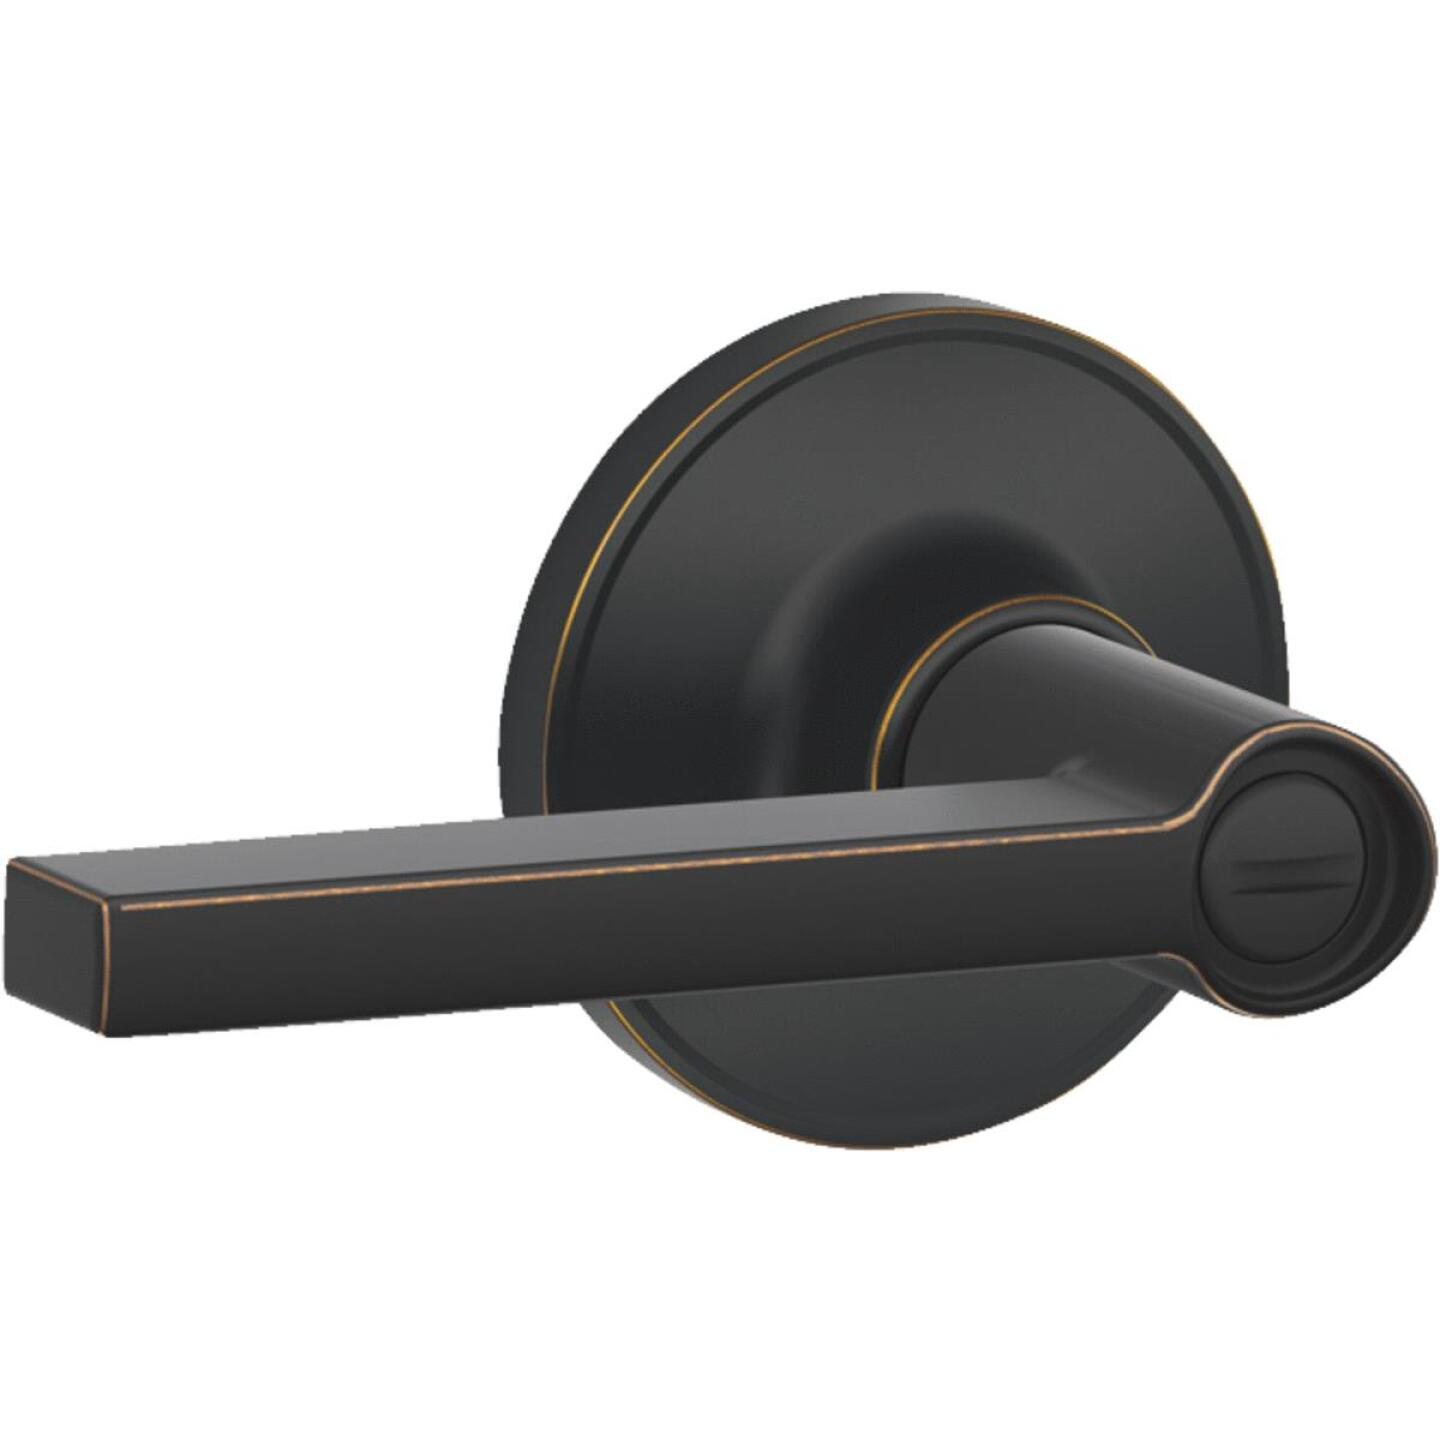 Dexter Solstice Aged Bronze Privacy Door Lever Lockset Image 1